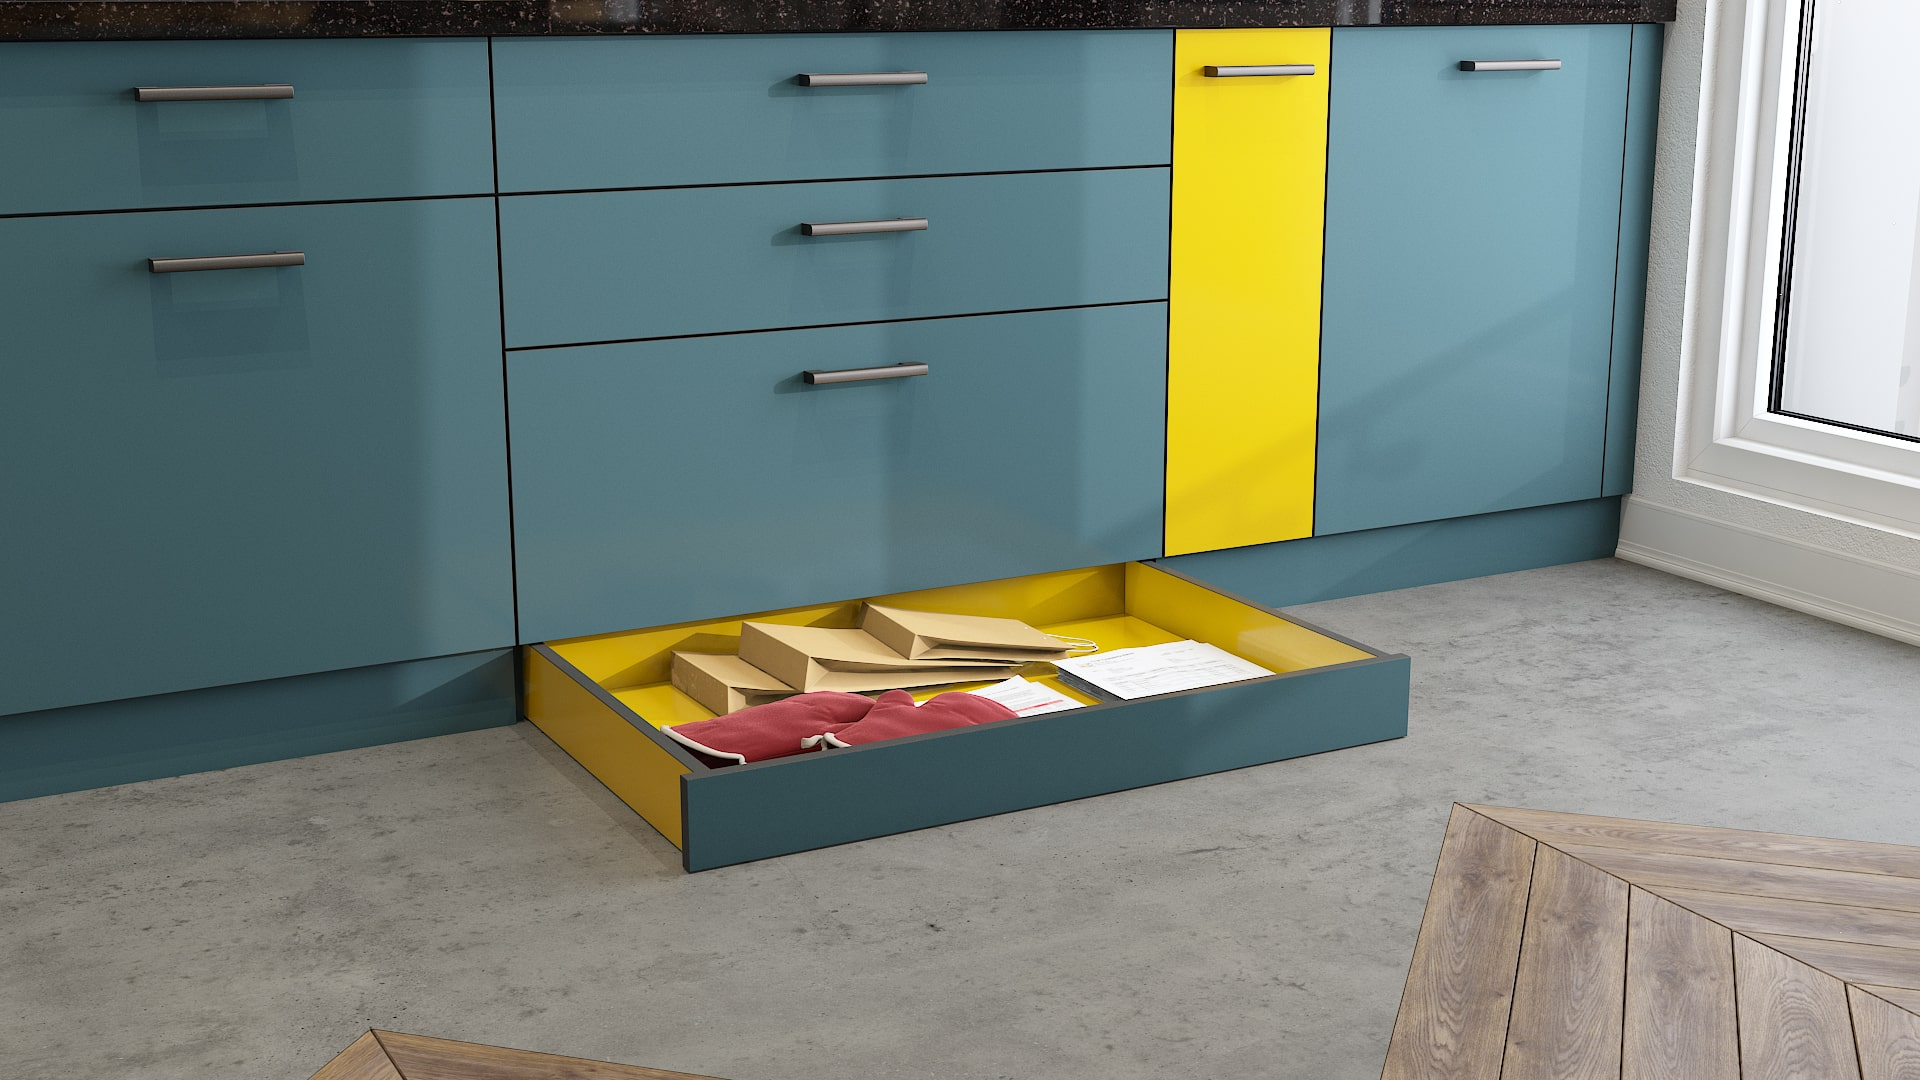 Maximize storage space in your modular kitchen with skirting drawers for small spaces